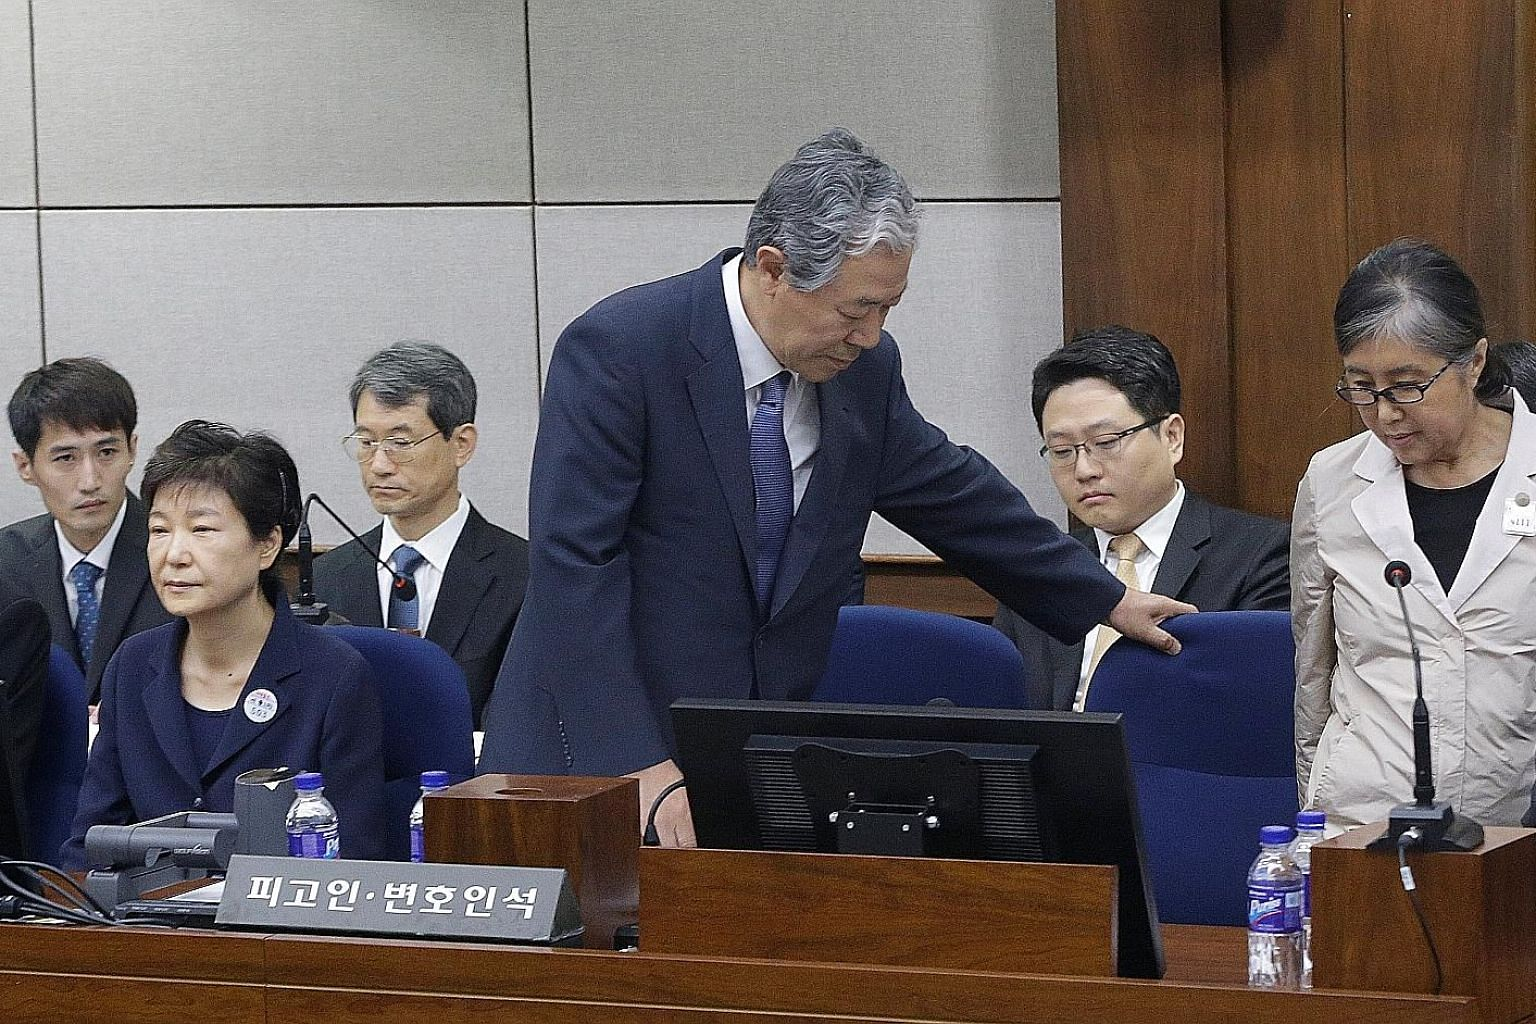 Park arriving for the trial yesterday. She has been held at Seoul Detention Centre since her arrest on March 31 and faces more than 18 charges, including abuse of power and extortion. Former South Korean president Park Geun Hye (left) in Courtroom No